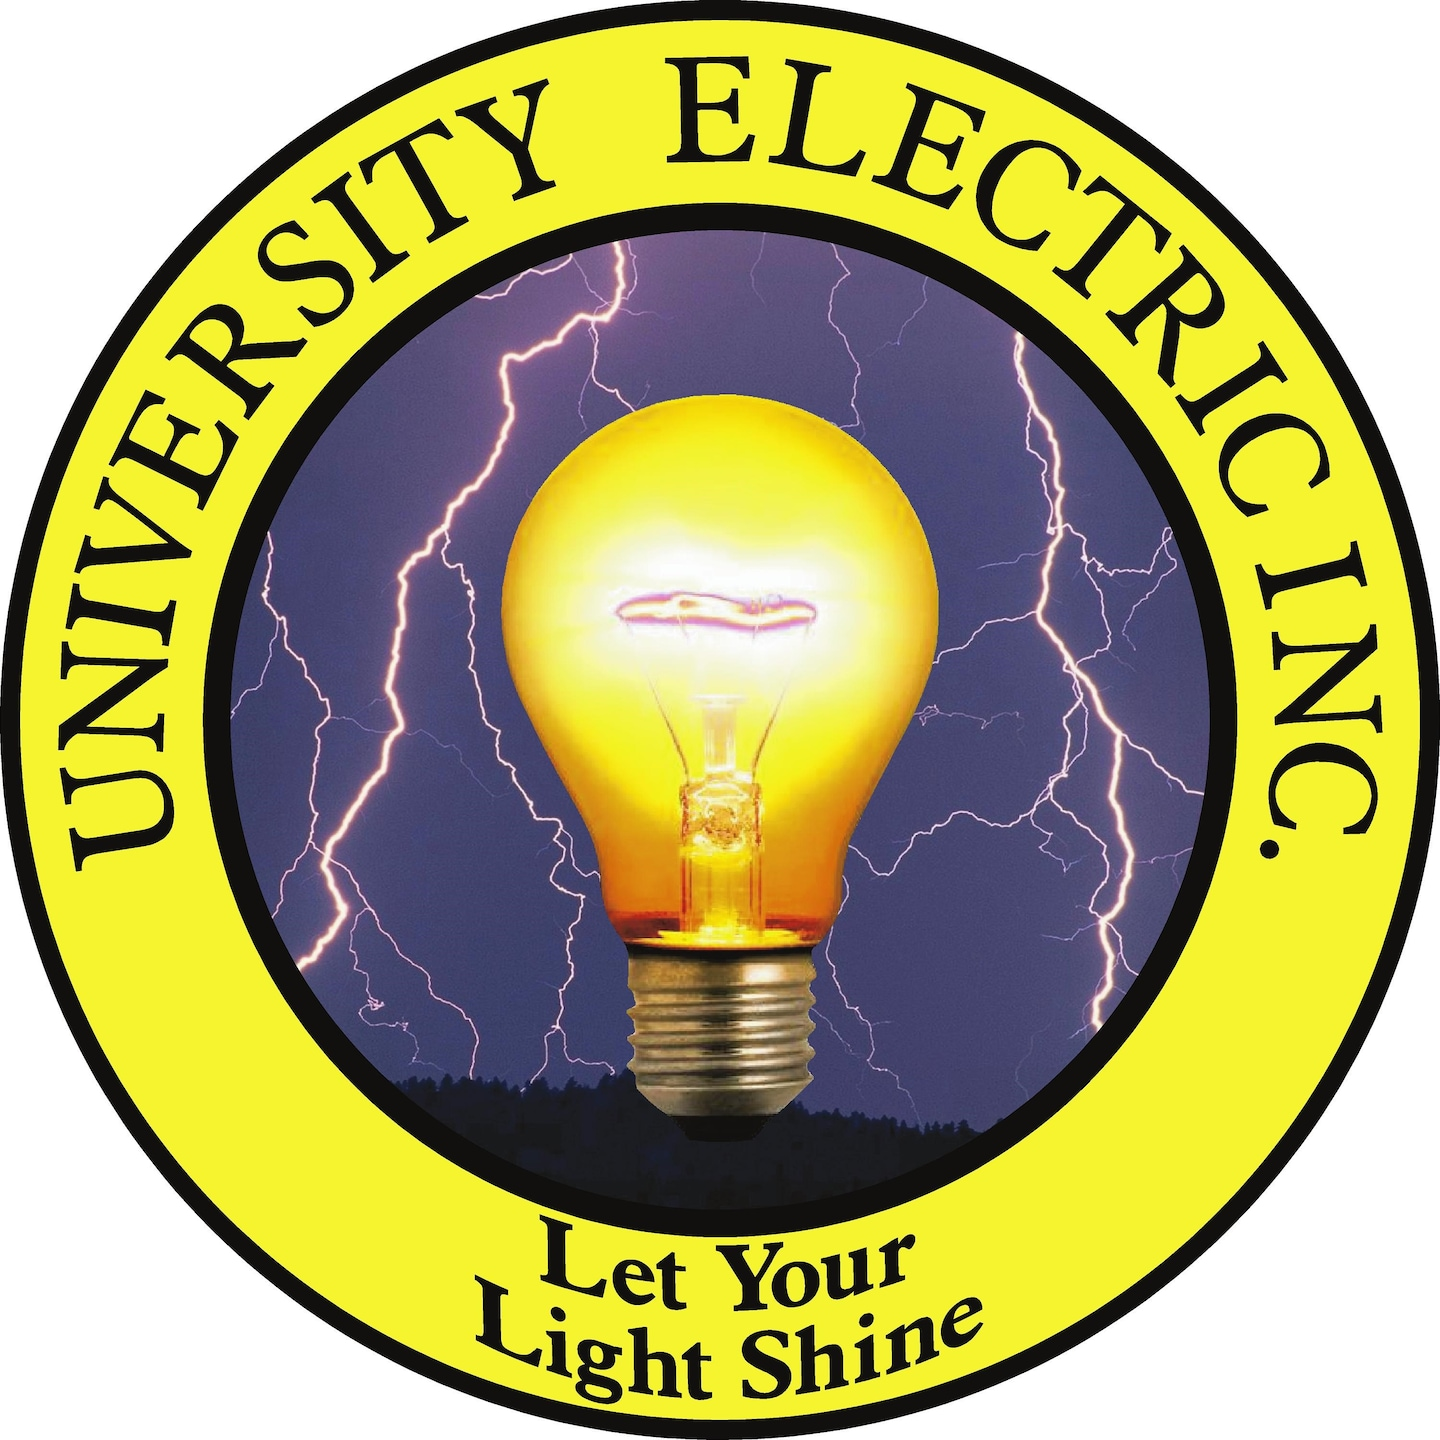 University Electric Inc